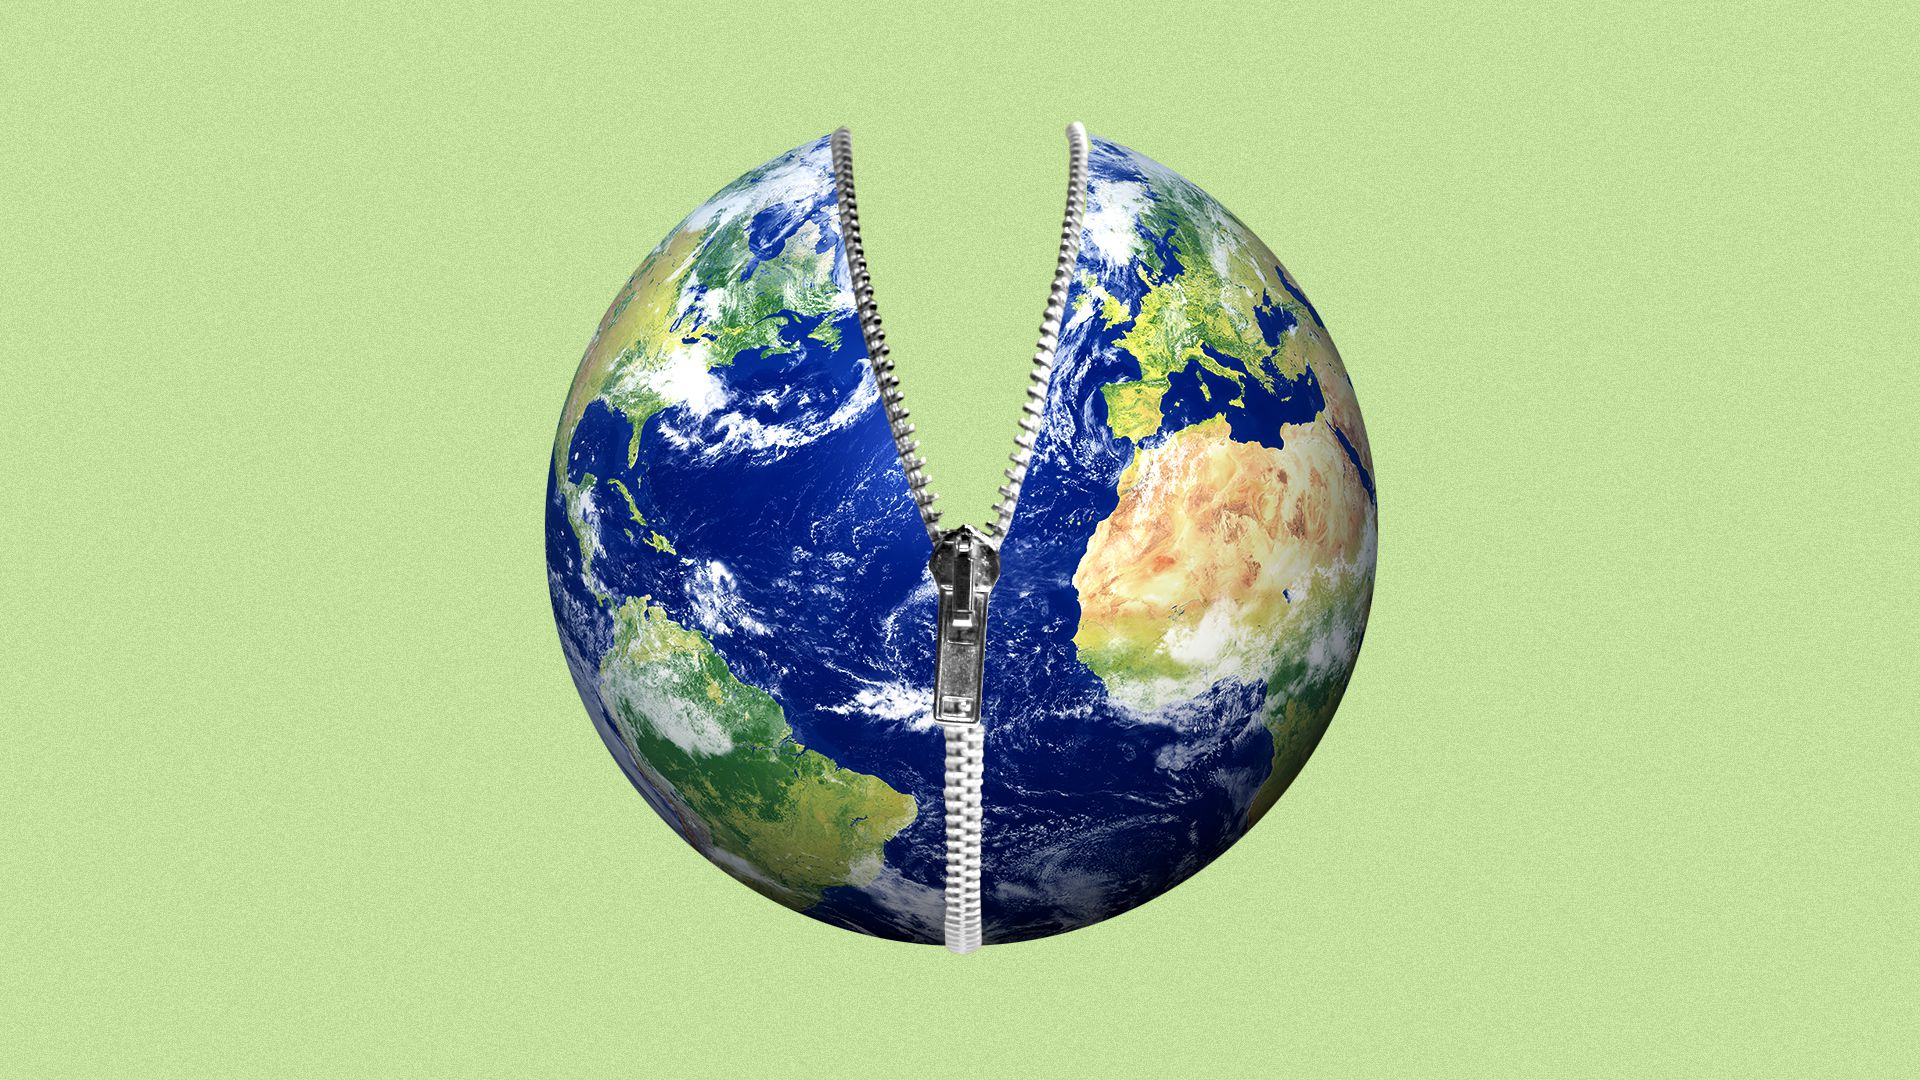 Illustration of the Earth being unzipped by a zipper